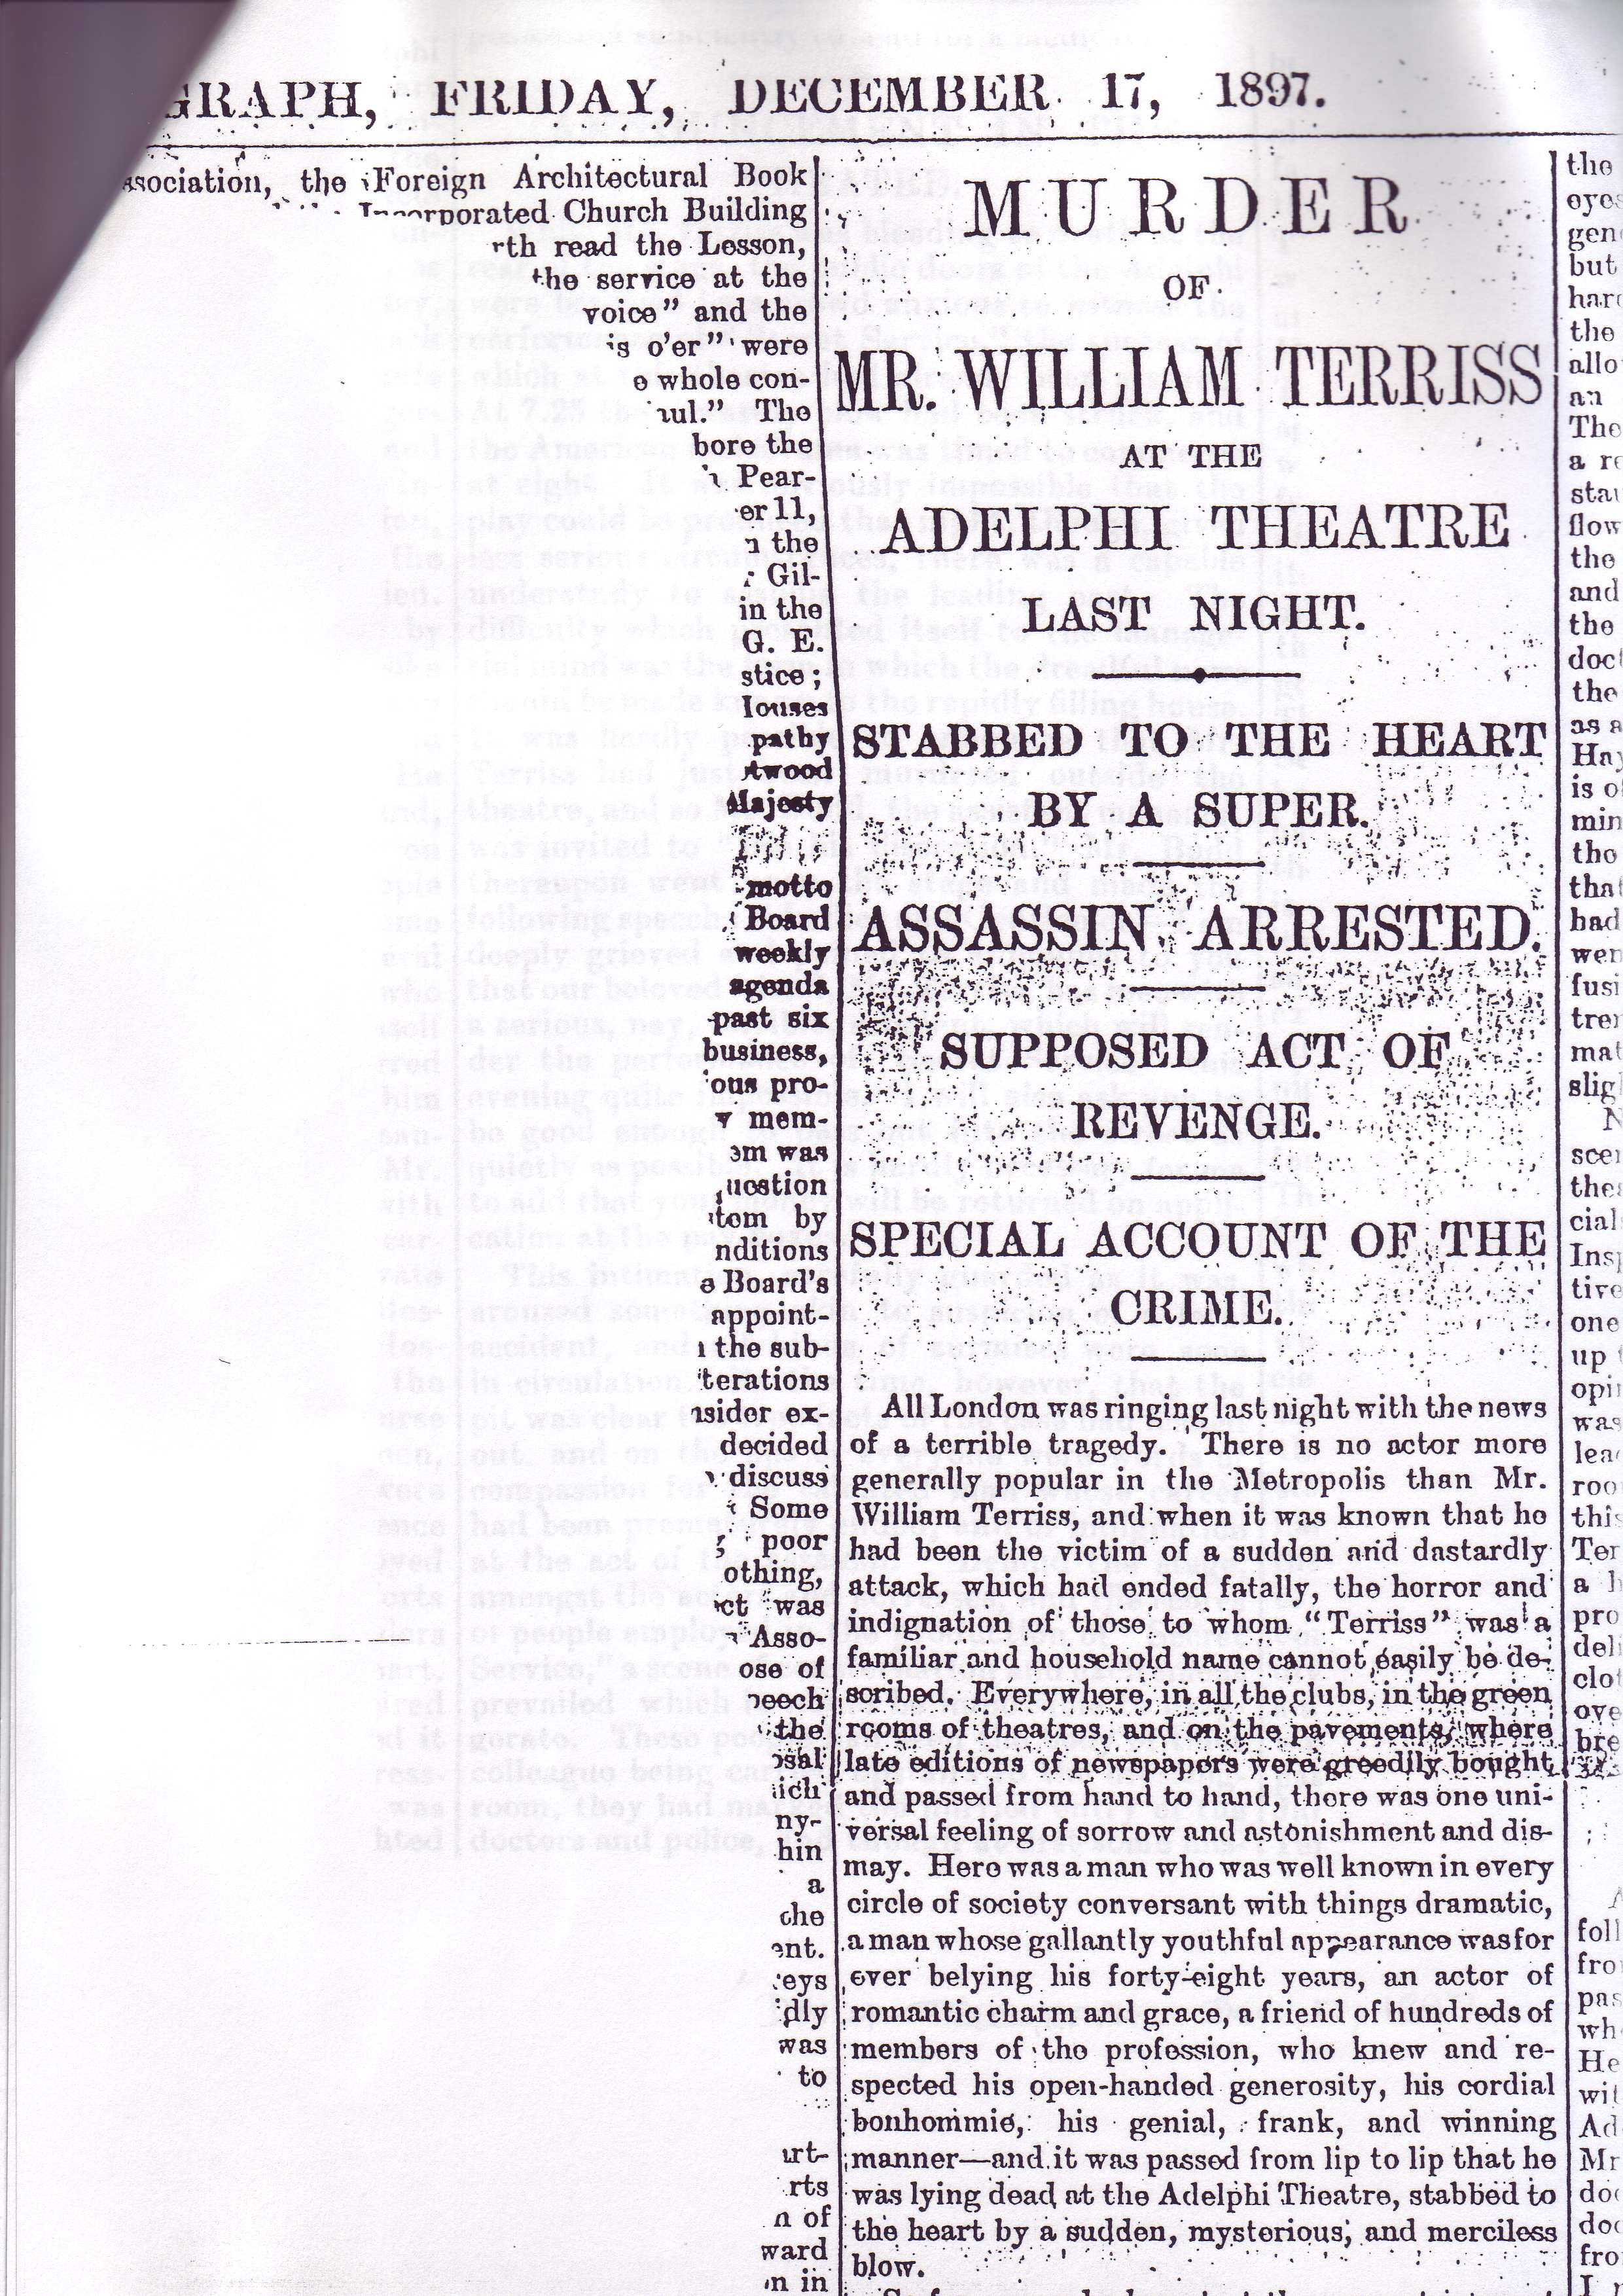 Article re: Terriss murder, Daily Telegraph 17.12.1897